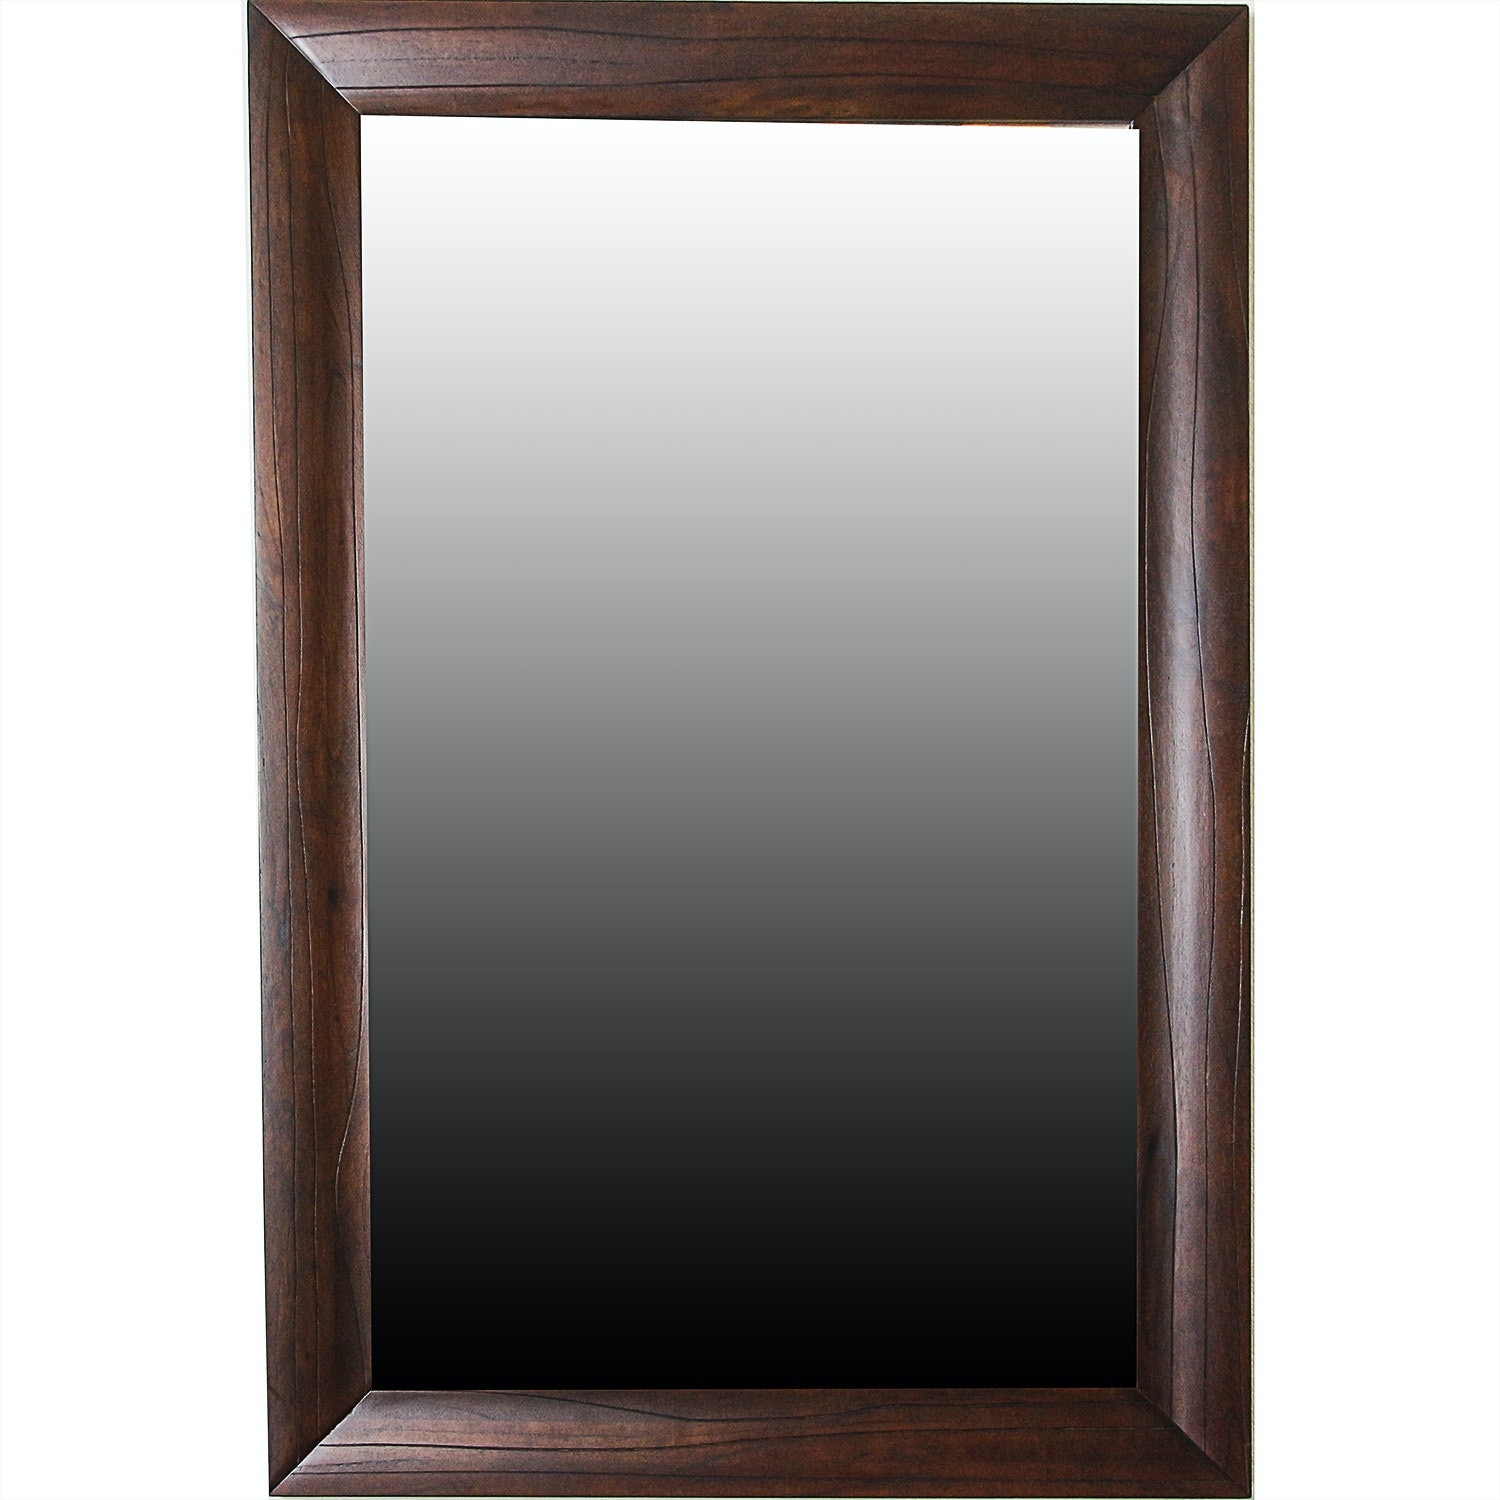 Contemporary Wall Mount Rectangular Mirror with Mahogany Stained Frame